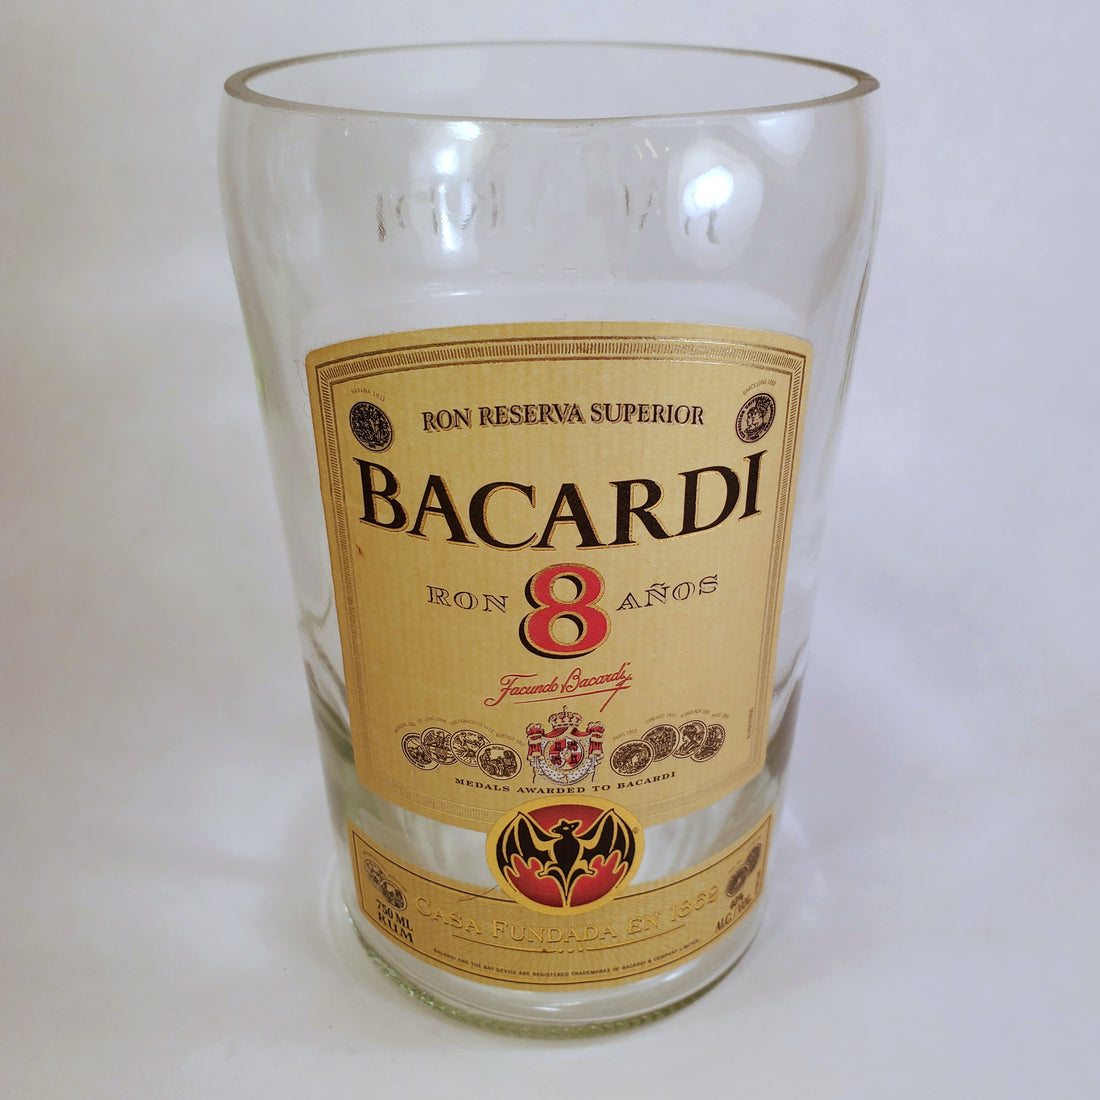 Bacardi Reserva 8 Anos Rum 750ml Hand Cut Upcycled Liquor Bottle Candle - Choose Your Scent